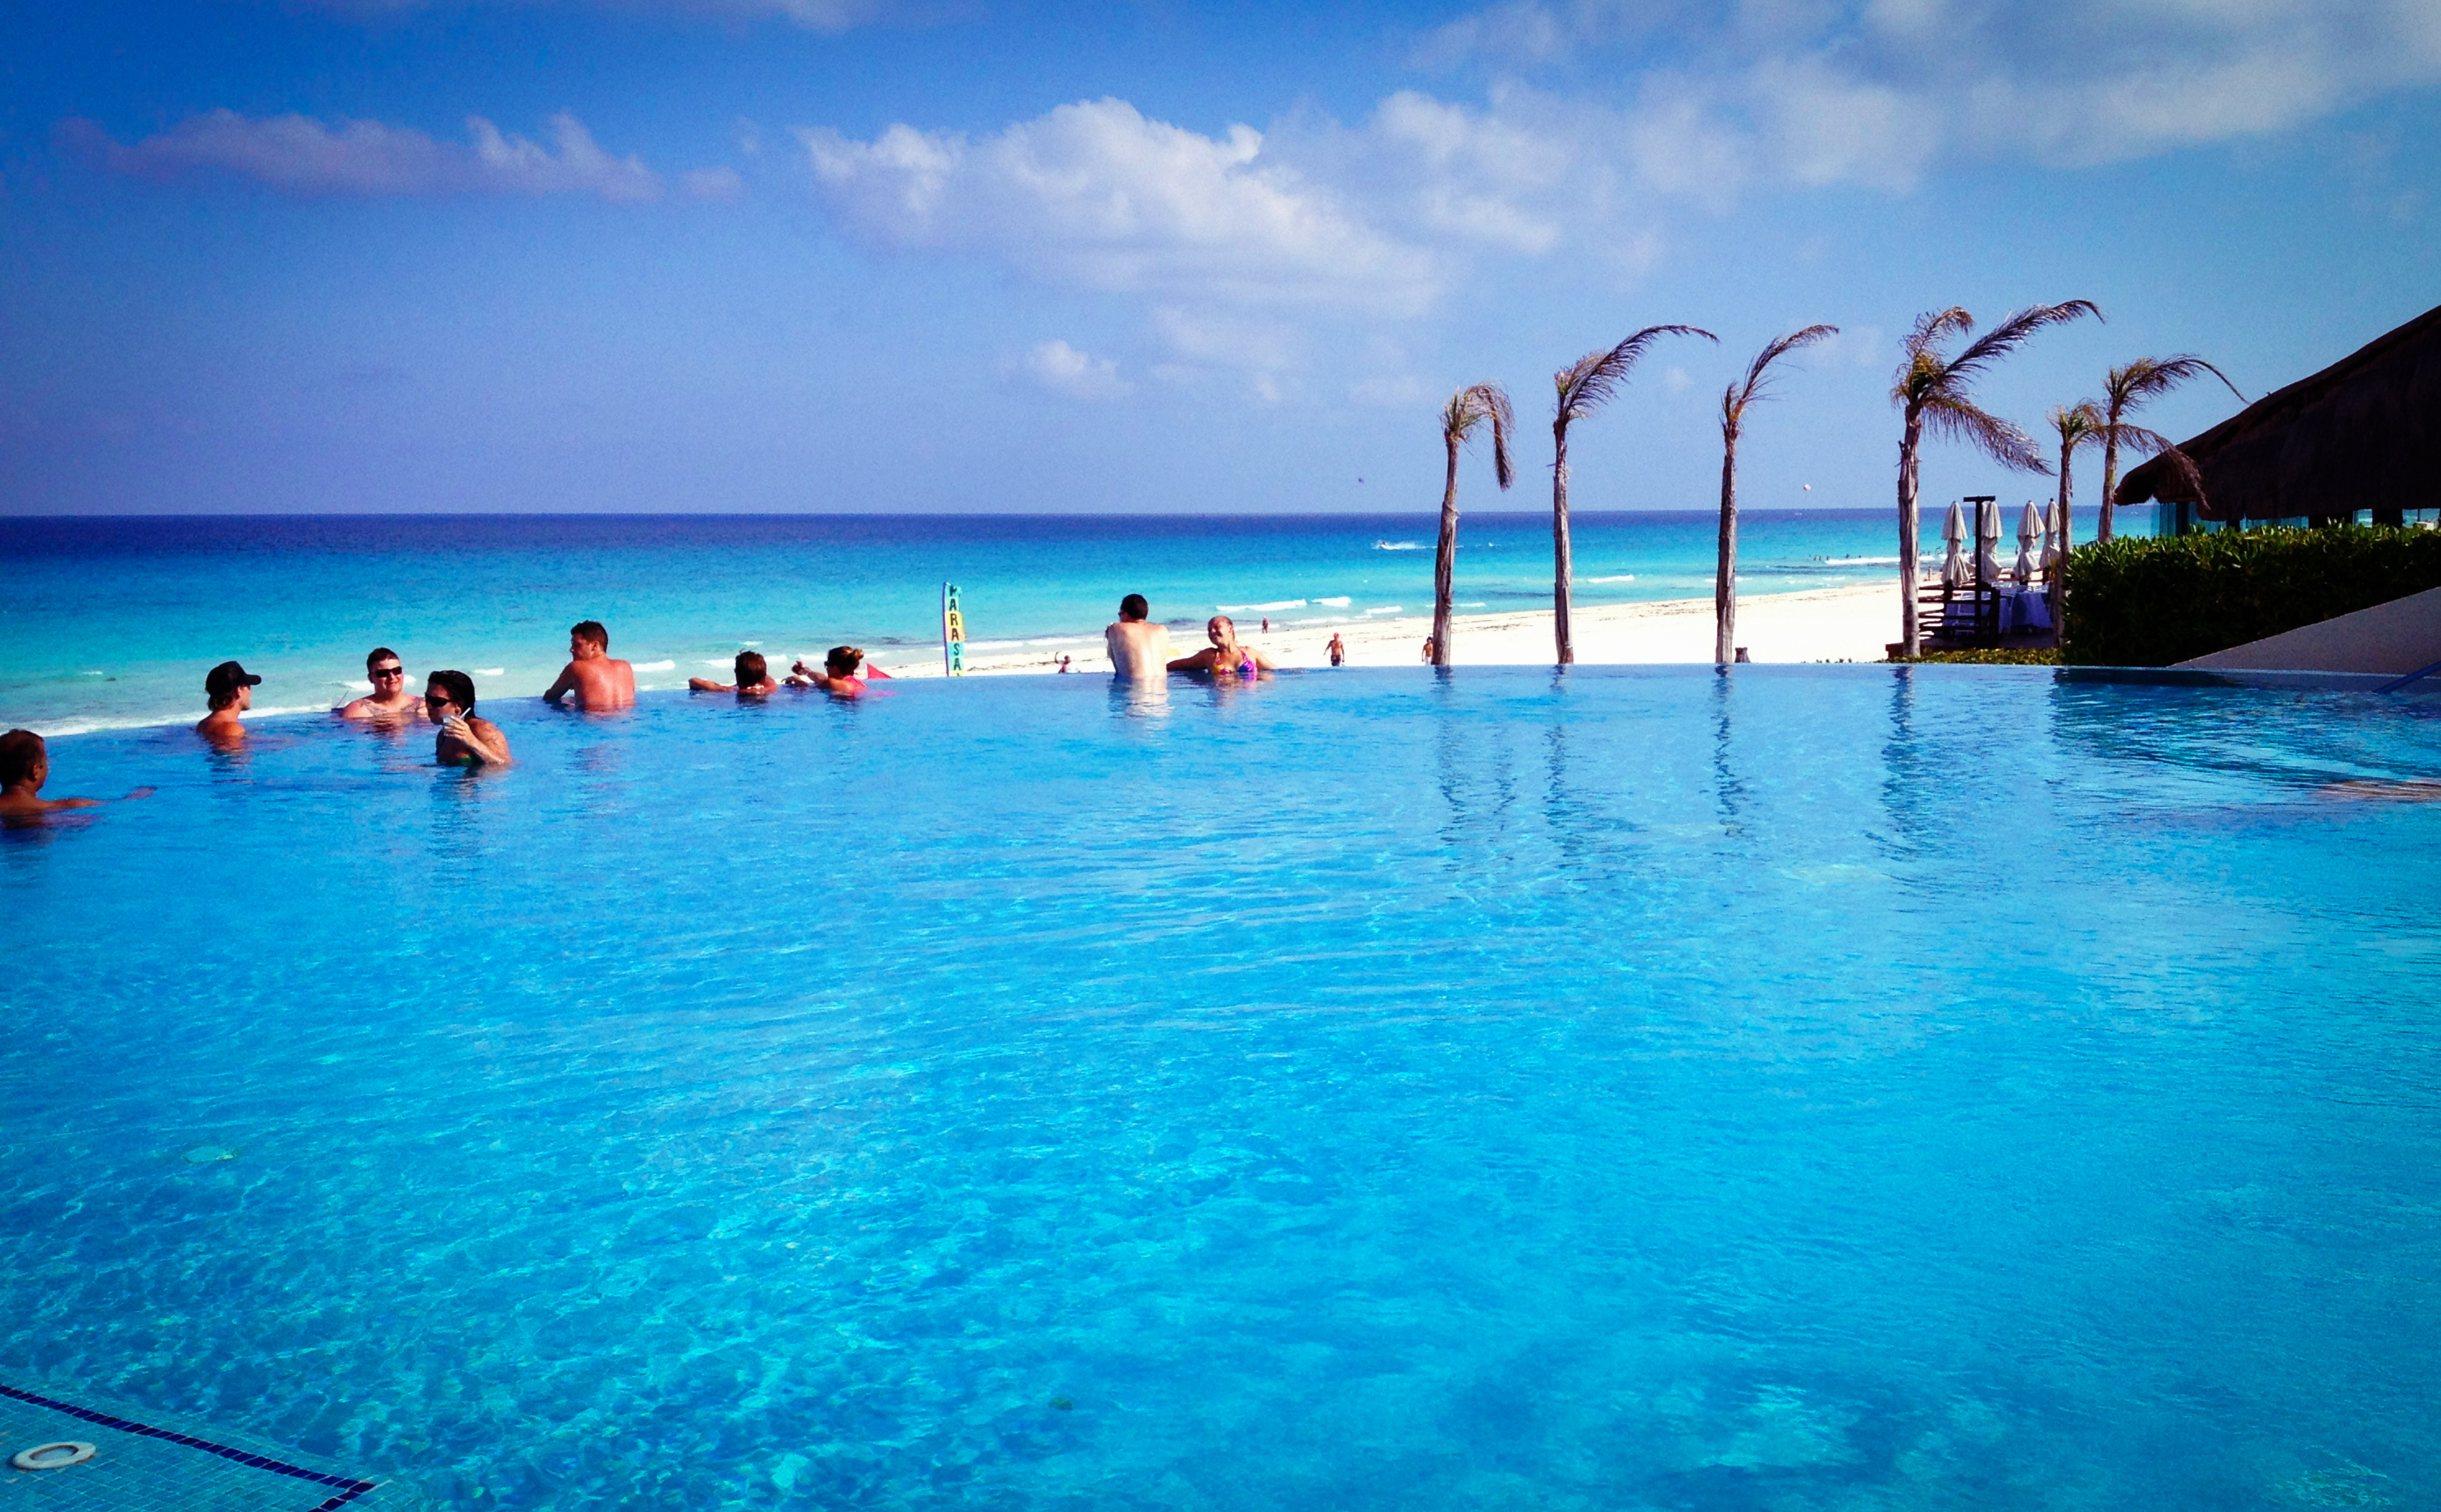 35 Amazing Photos Of Cancun The Pearl Of Mexico Boomsbeat